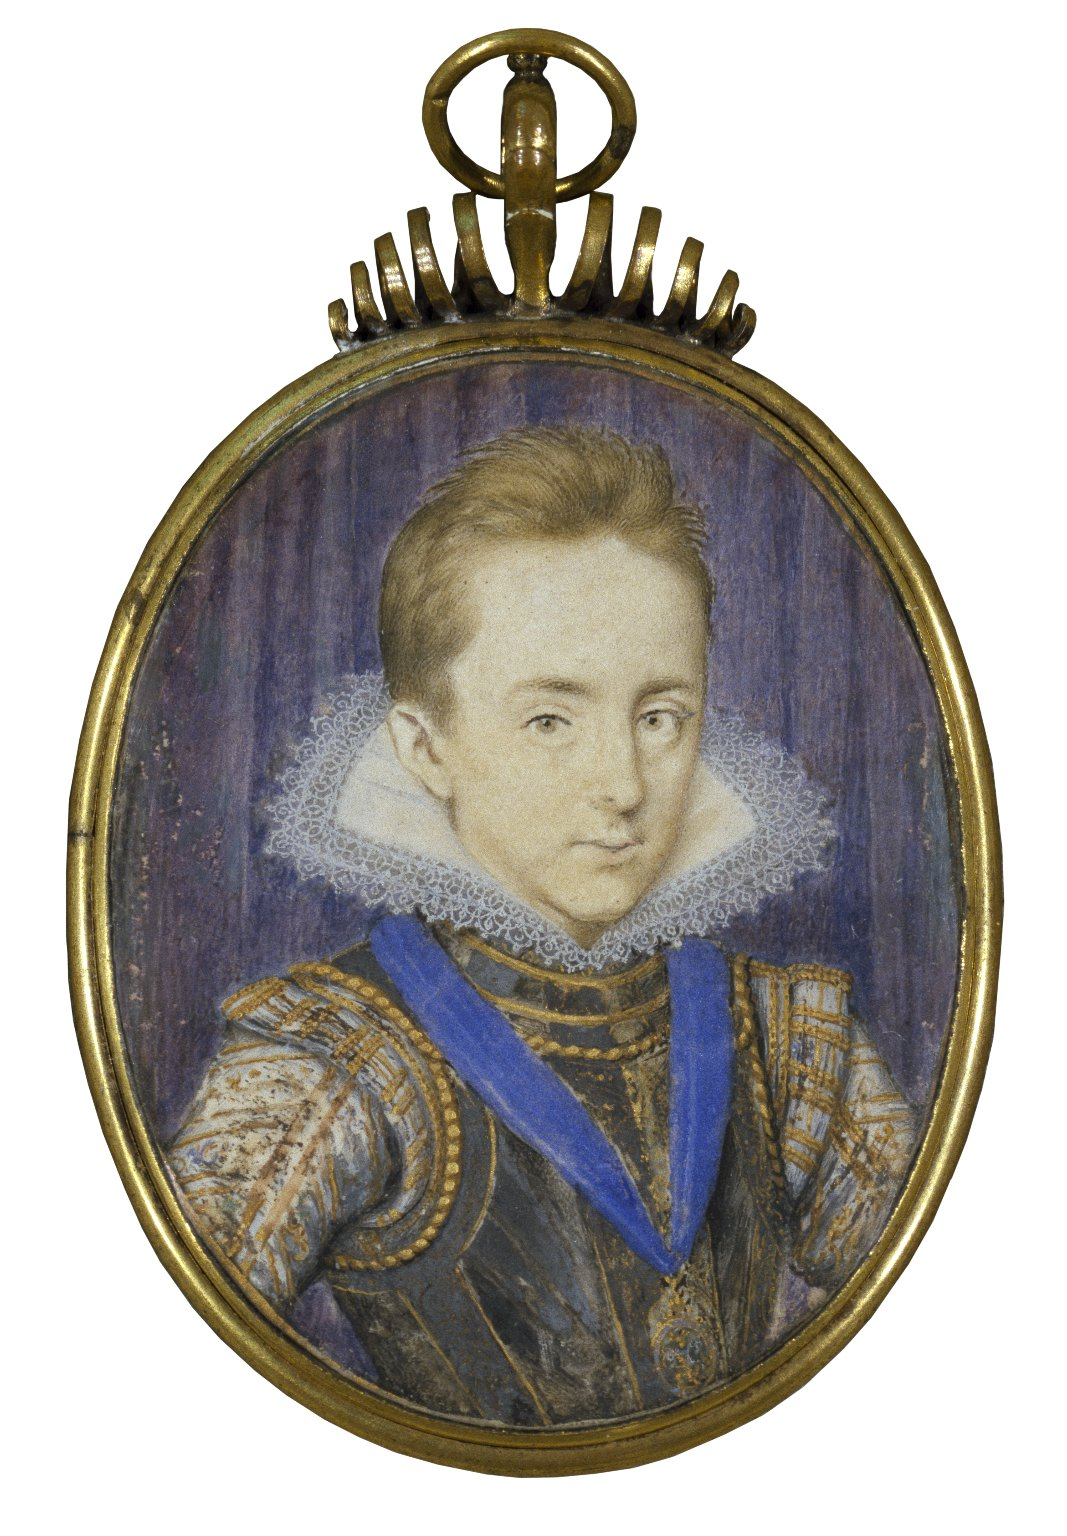 Henry Frederick, Prince of Wales